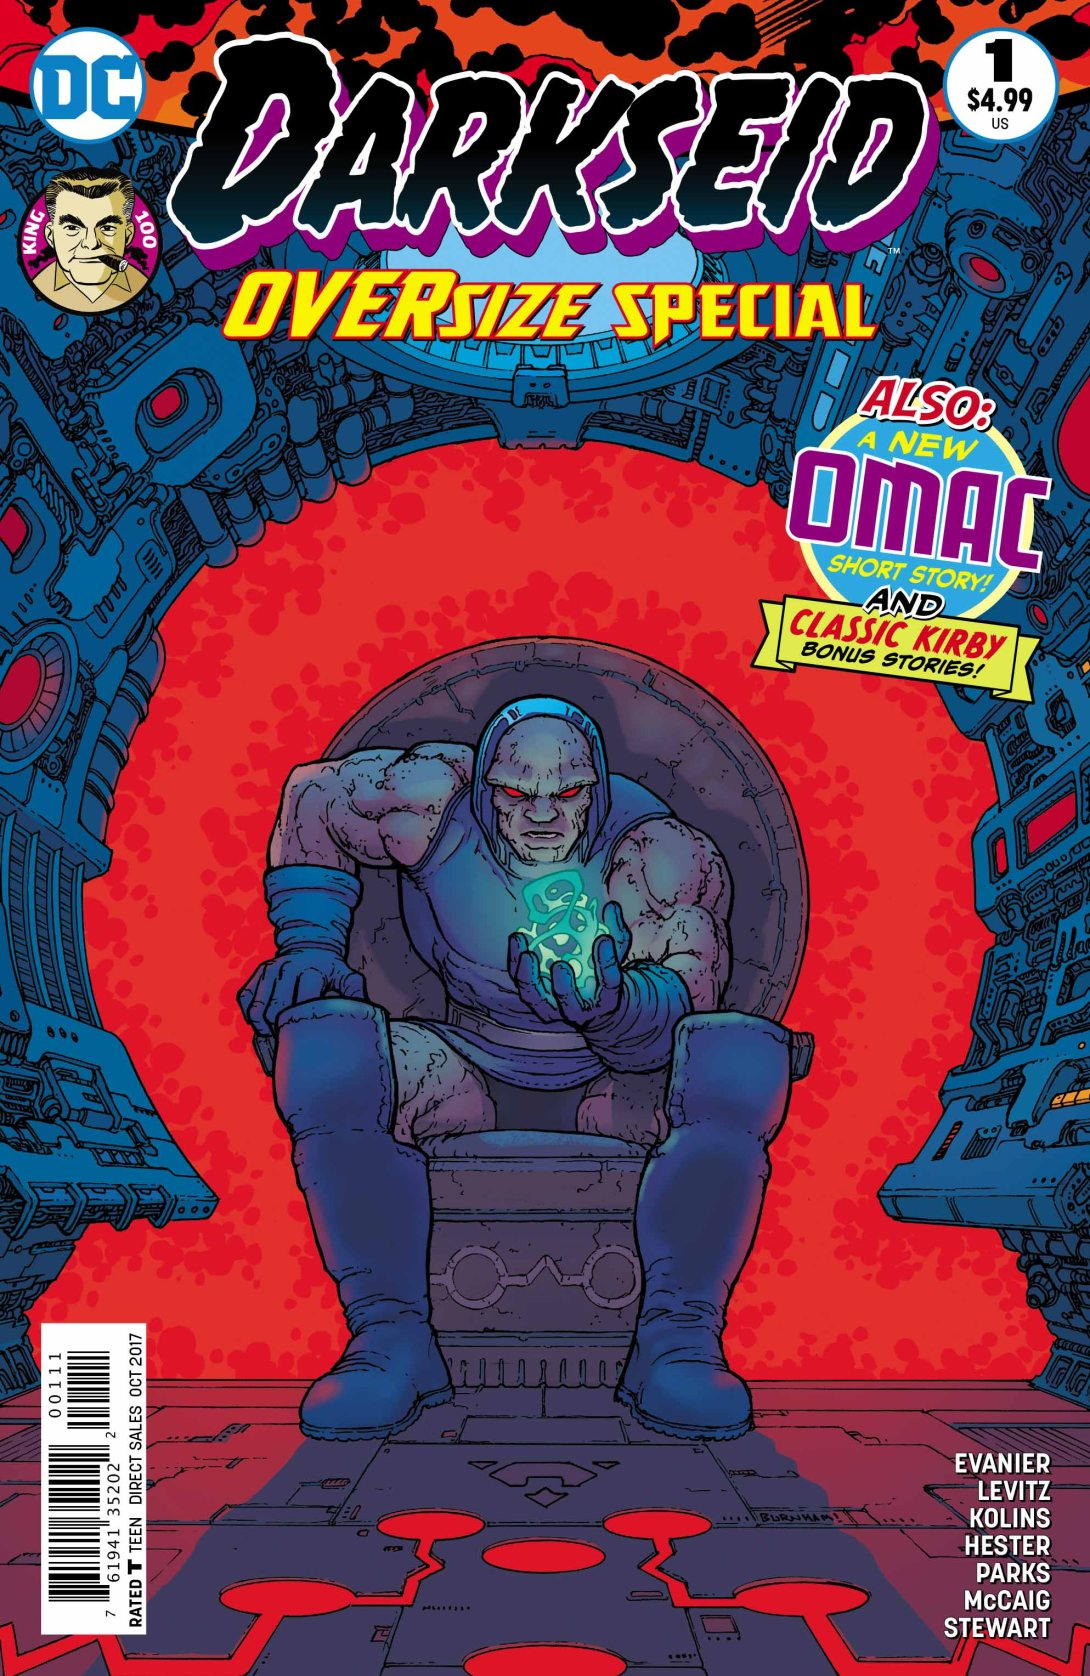 Darkseid Cover - DC Comics News